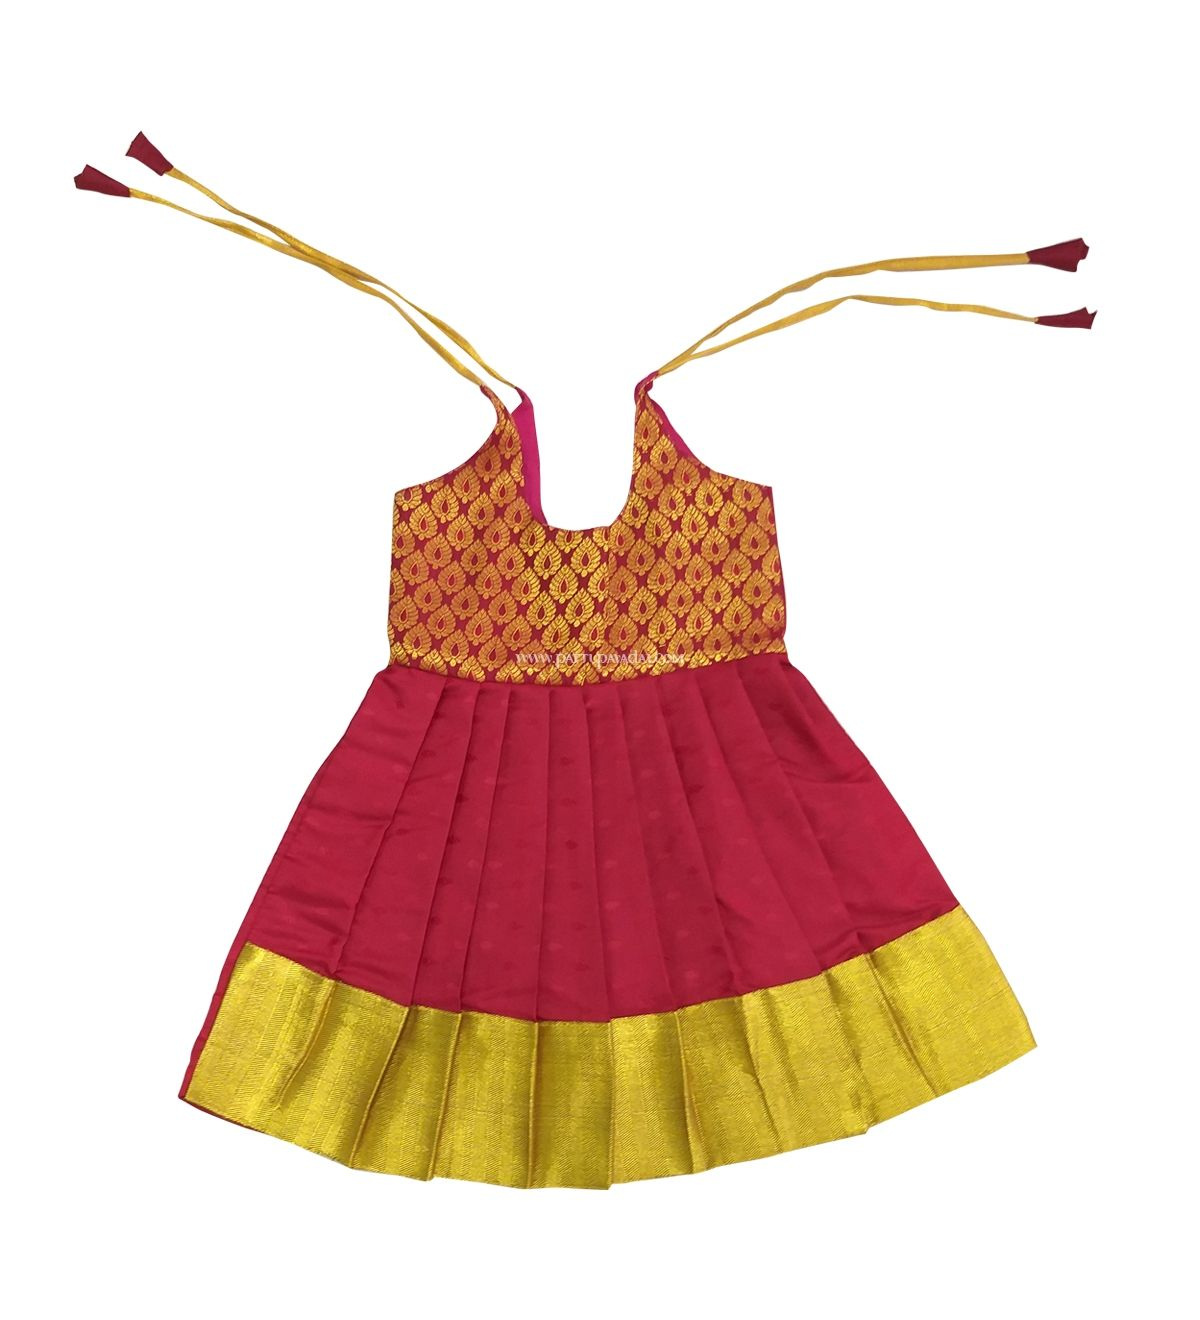 Vibrant Just born 3 months baby silk frock. Buy online at